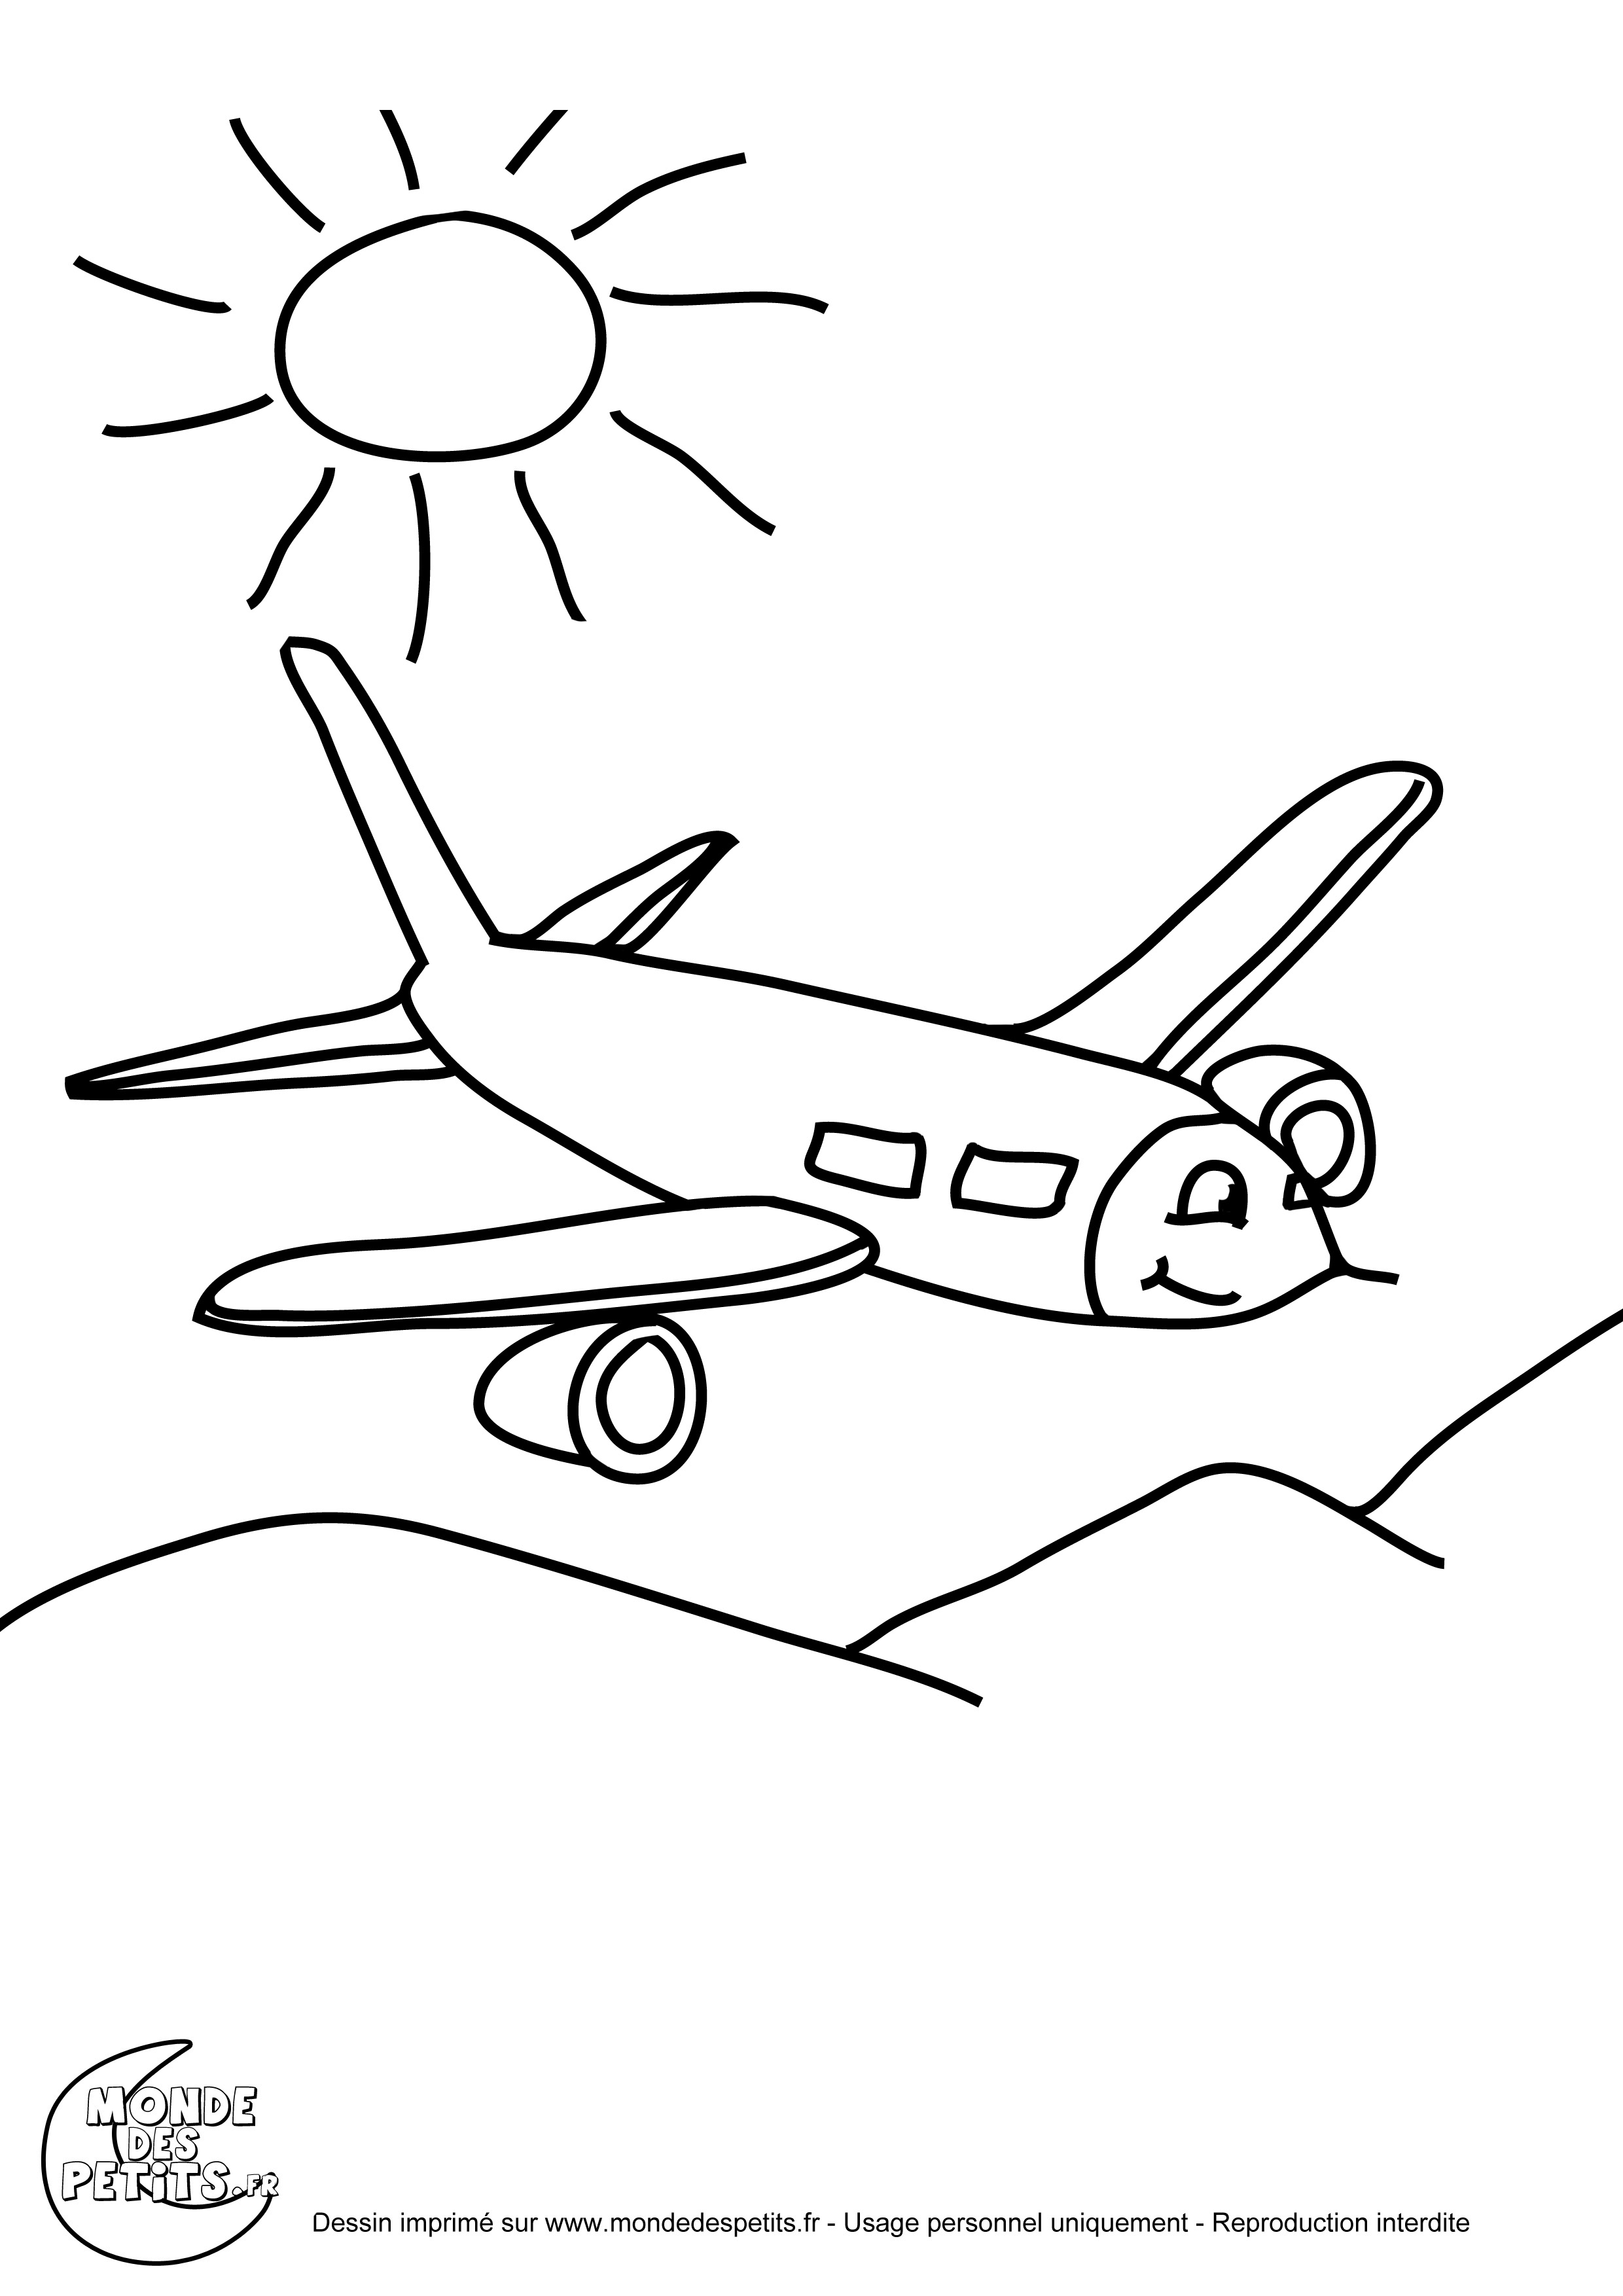 Coloriage Avion De Voltige.Coloriage Avion Les Beaux Dessins De Transport A Imprimer